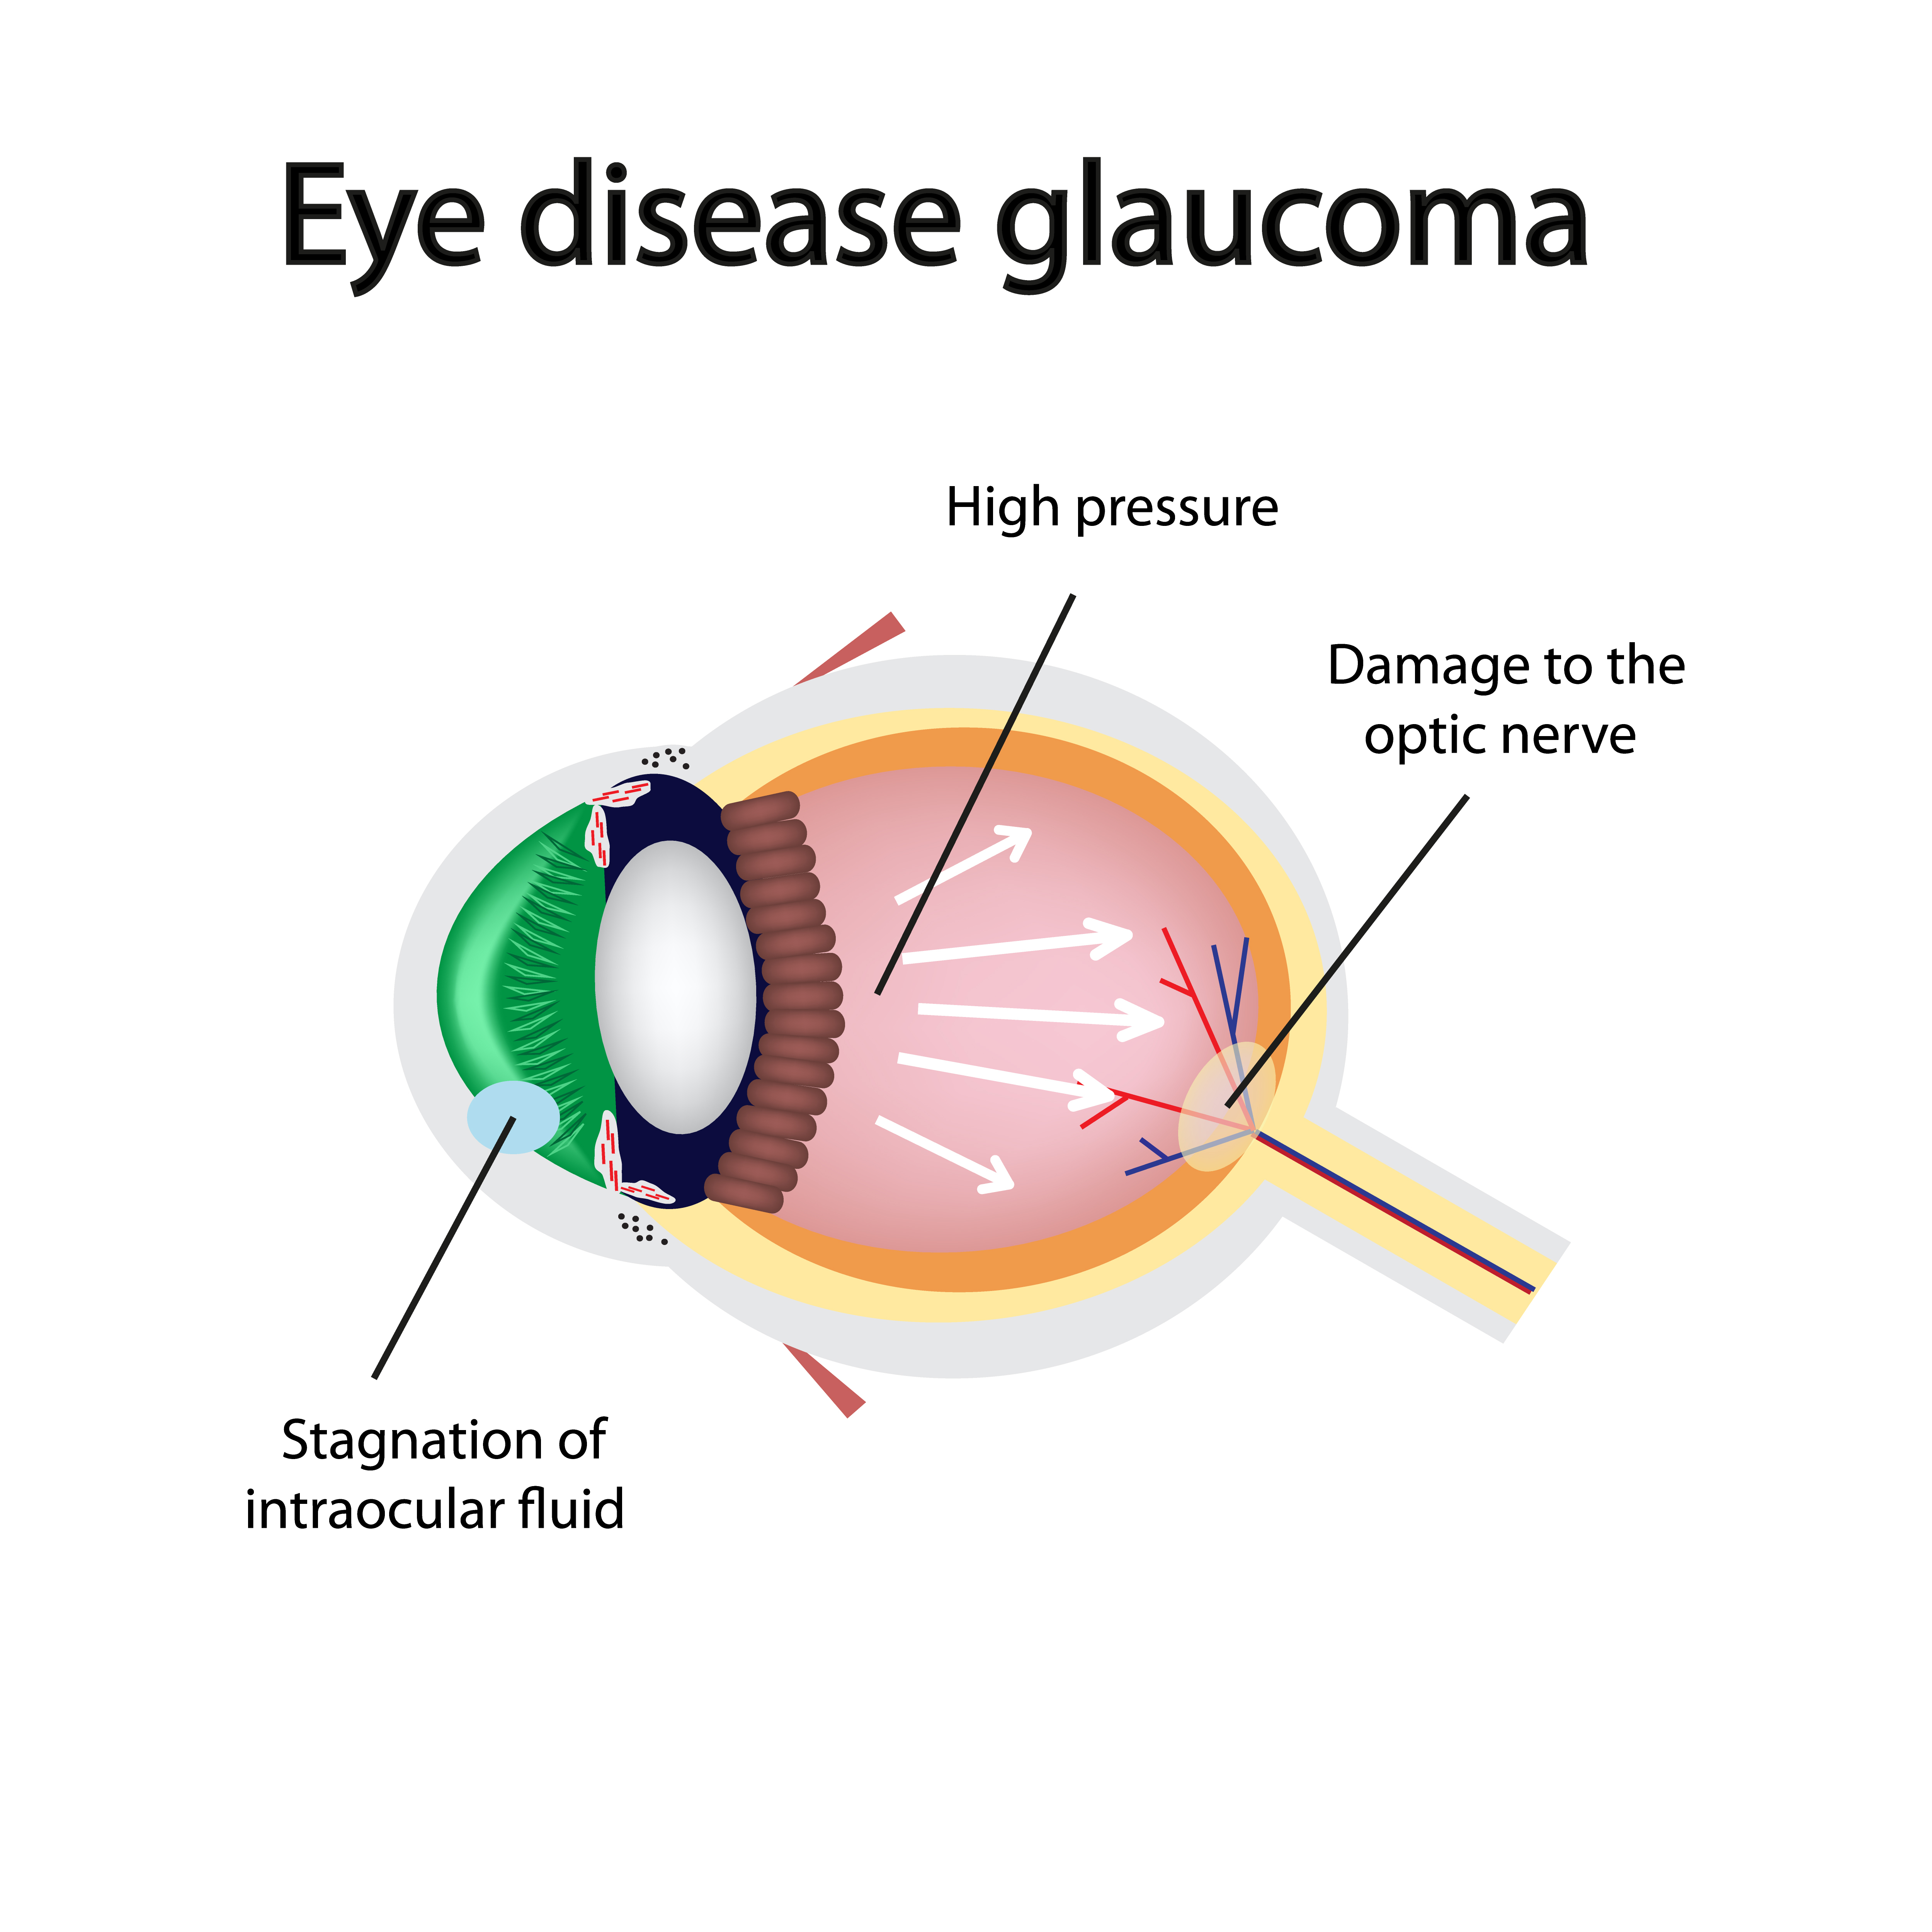 thesis on glaucoma Free essay examples, how to write essay on glaucoma eye vision fluid example essay, research paper, custom writing write my essay on glaucoma eye vision.